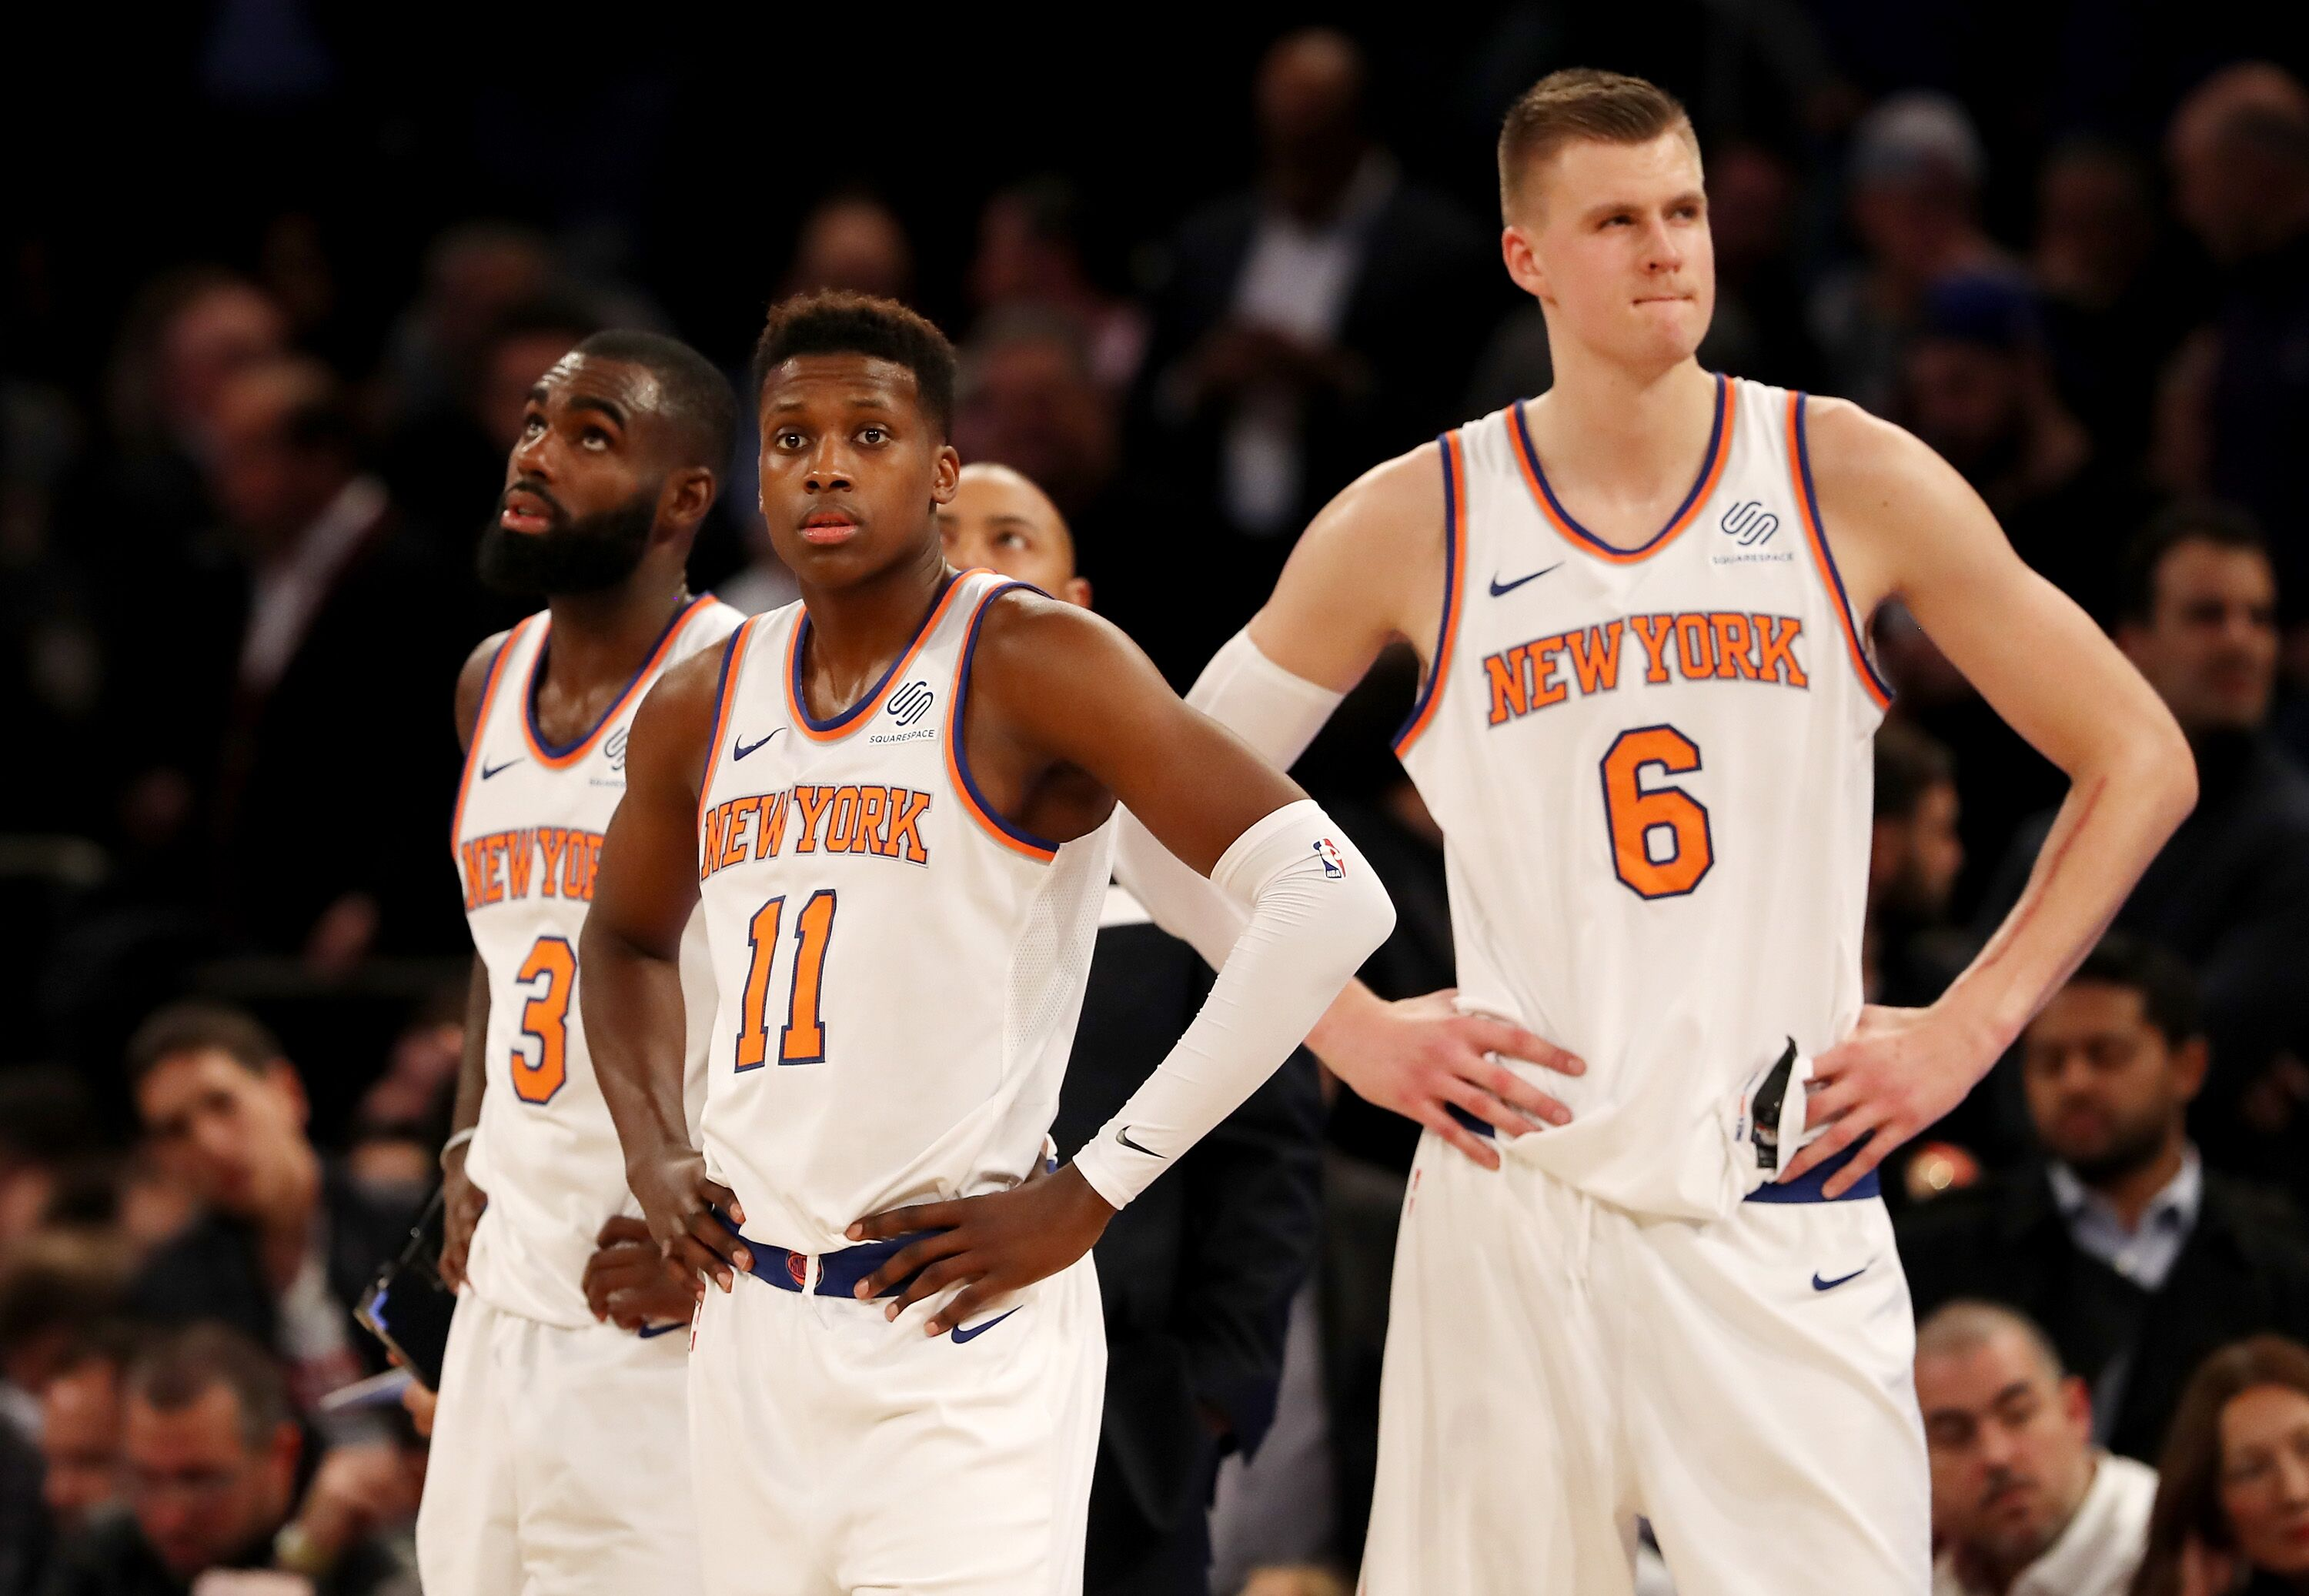 New York Knicks 873843720-cleveland-cavaliers-v-new-york-knicks.jpg